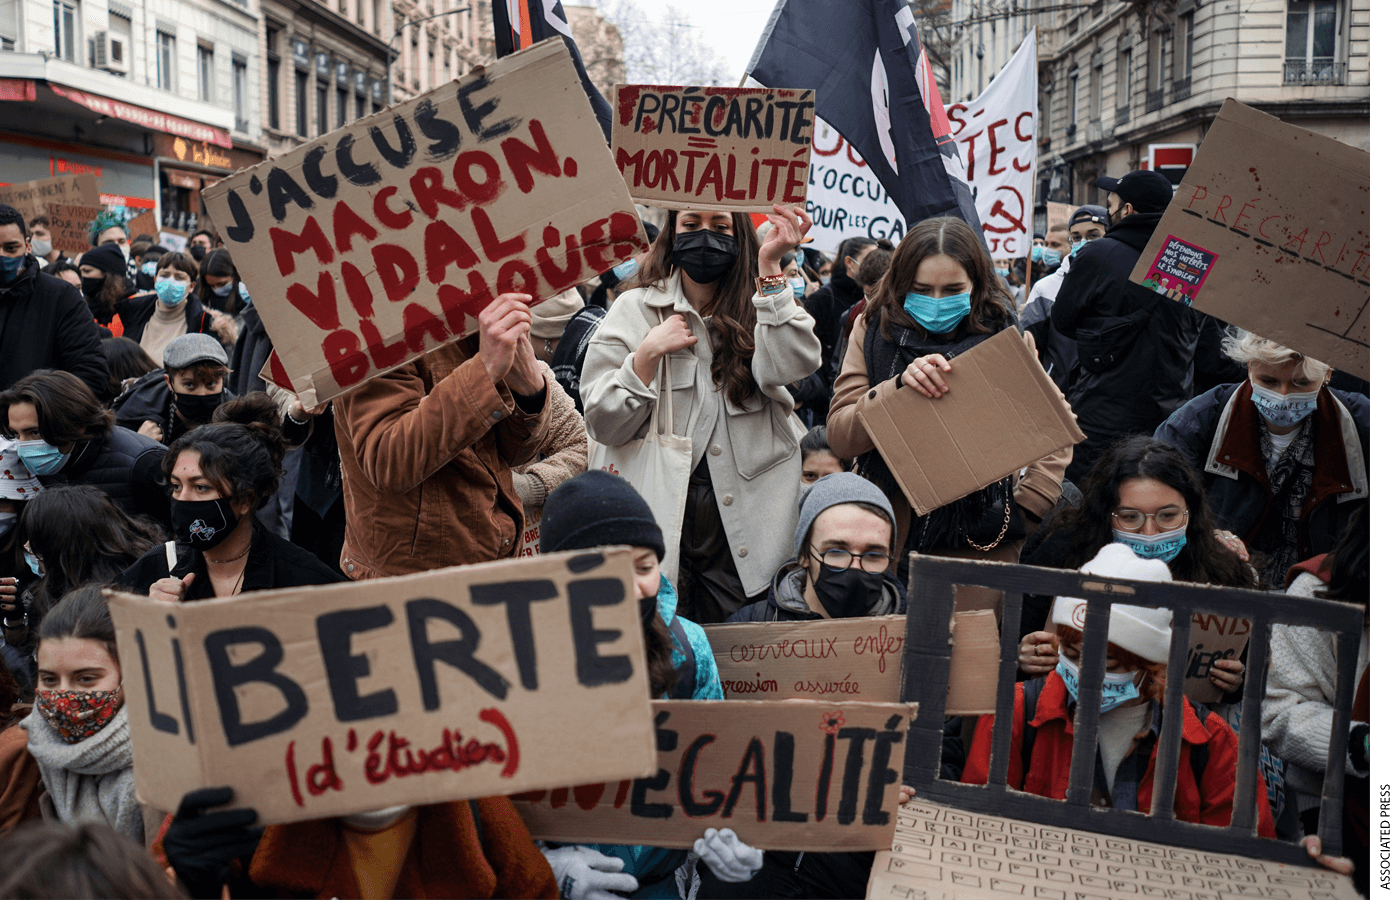 Students hold banners during a demonstration to demand support for workers, in Lyon, central France, Tuesday, Jan. 26, 2021.